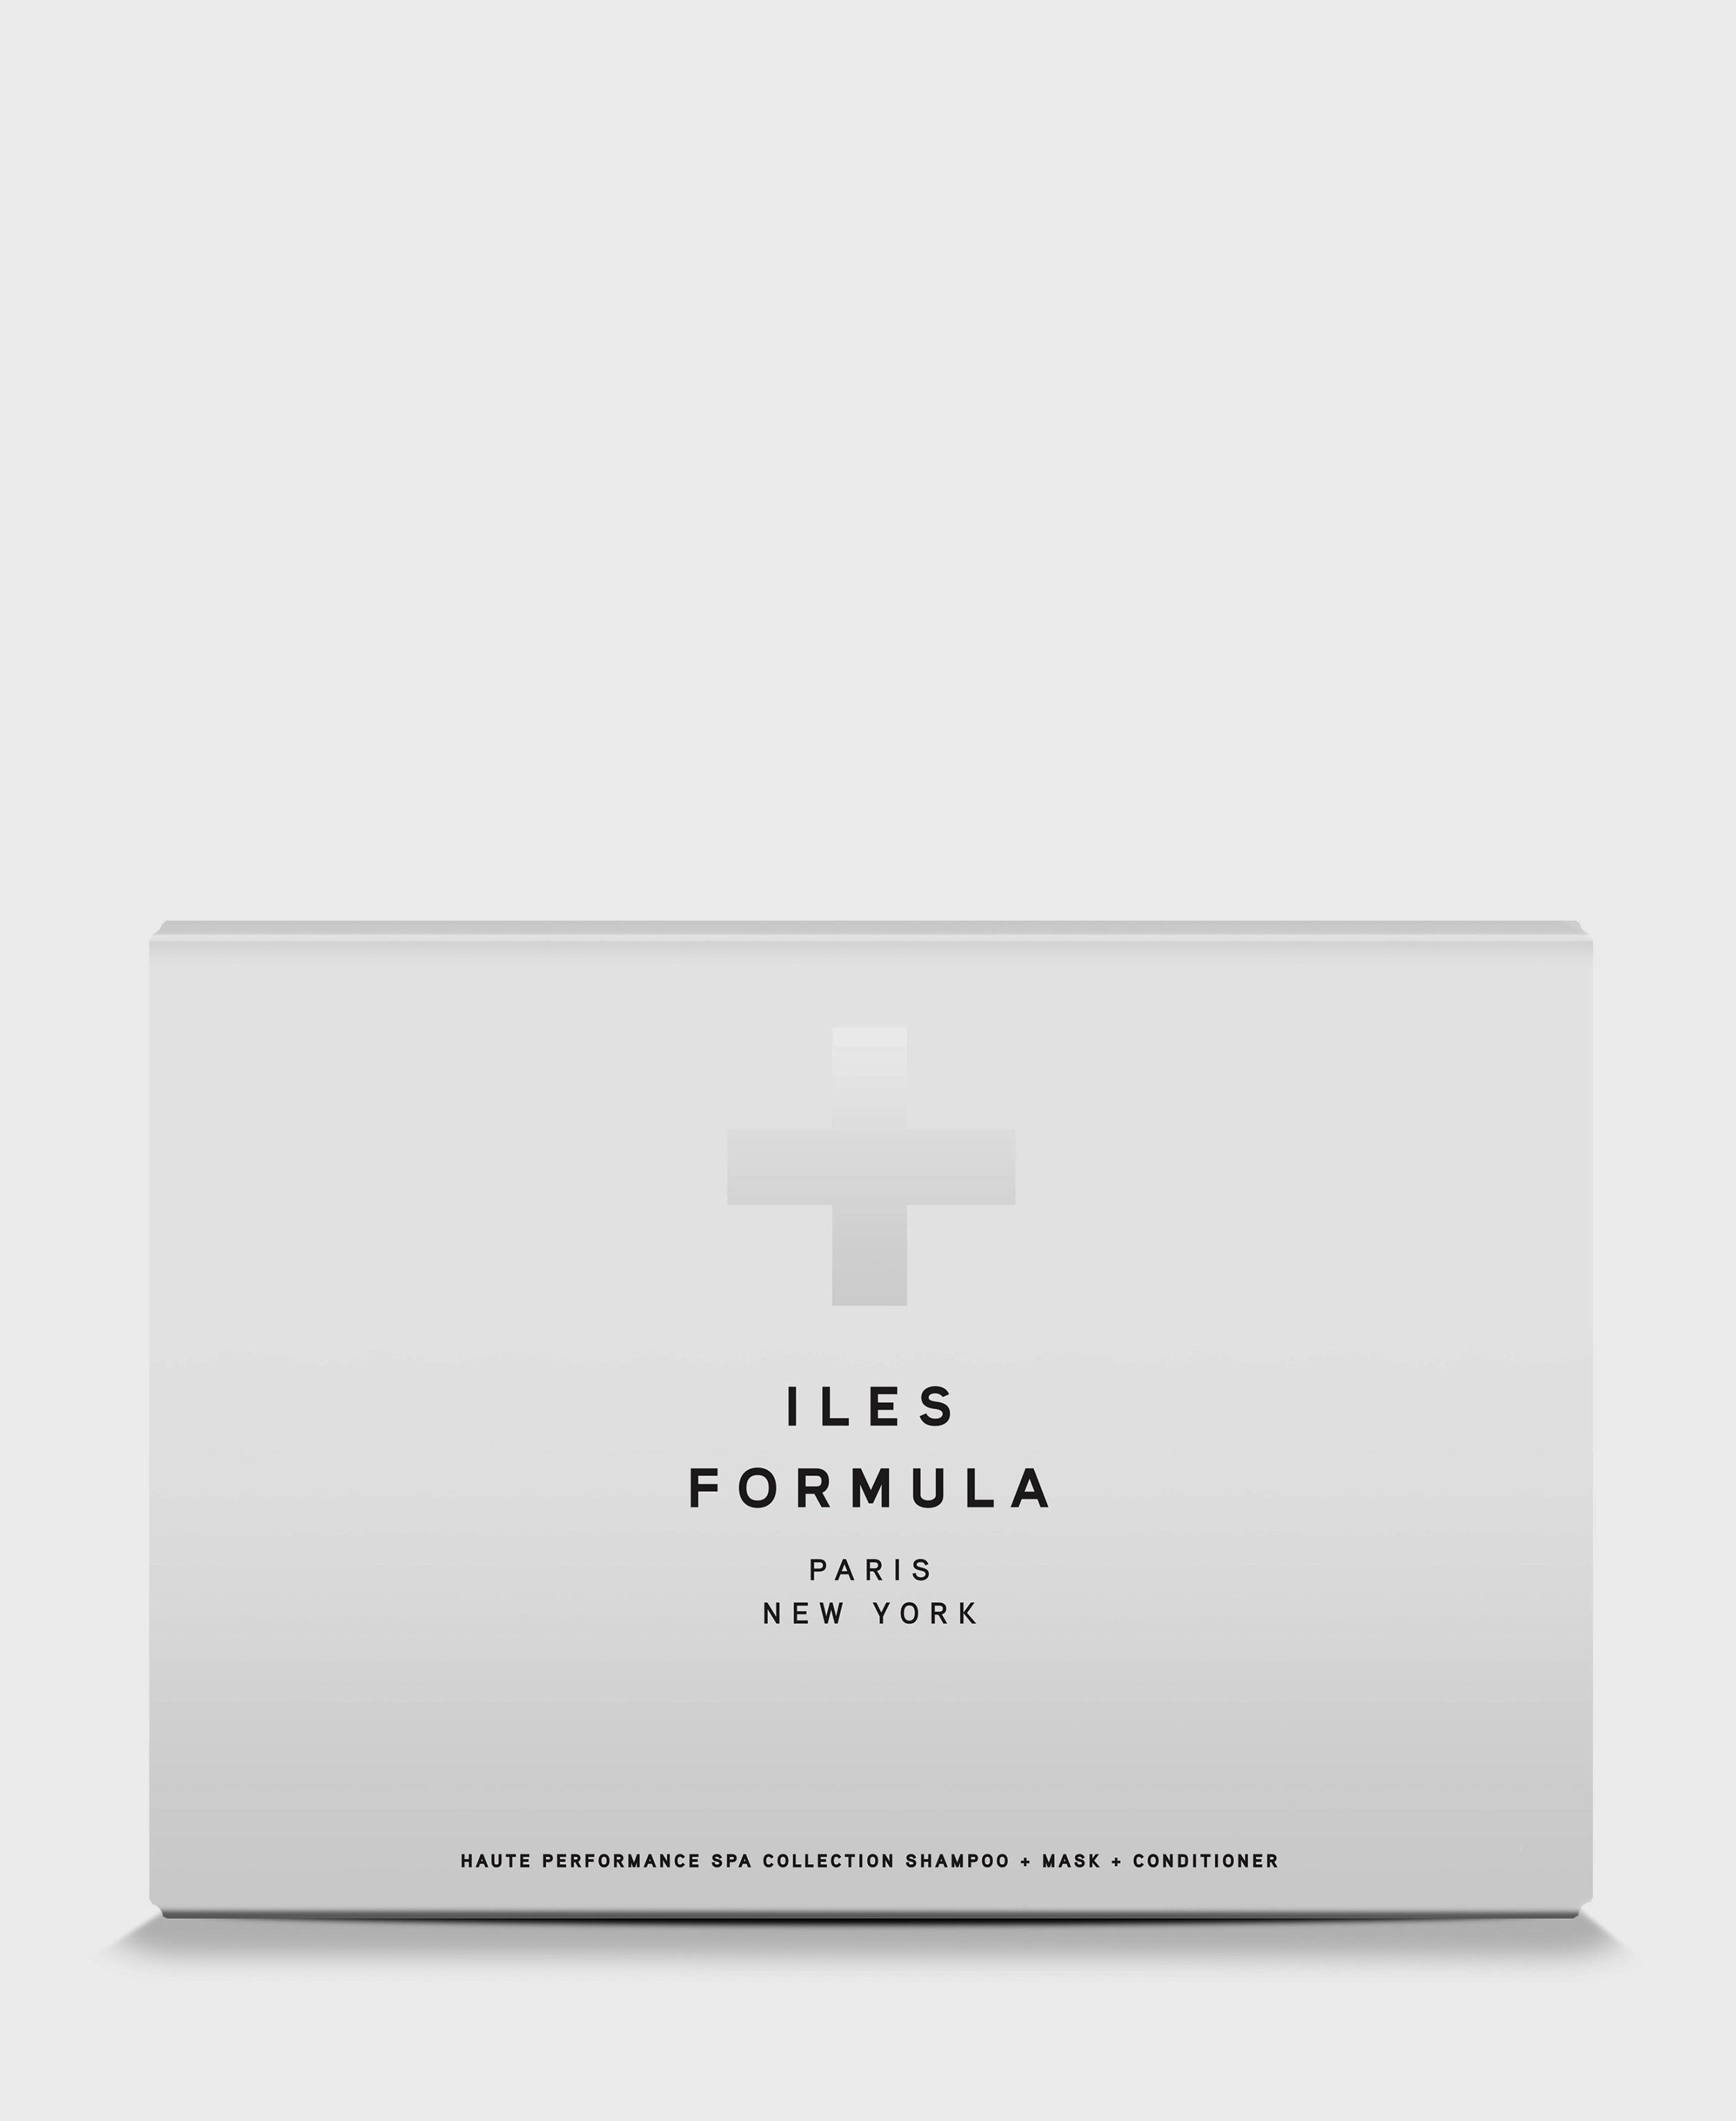 ILES FORMULA SPA COLLECTION